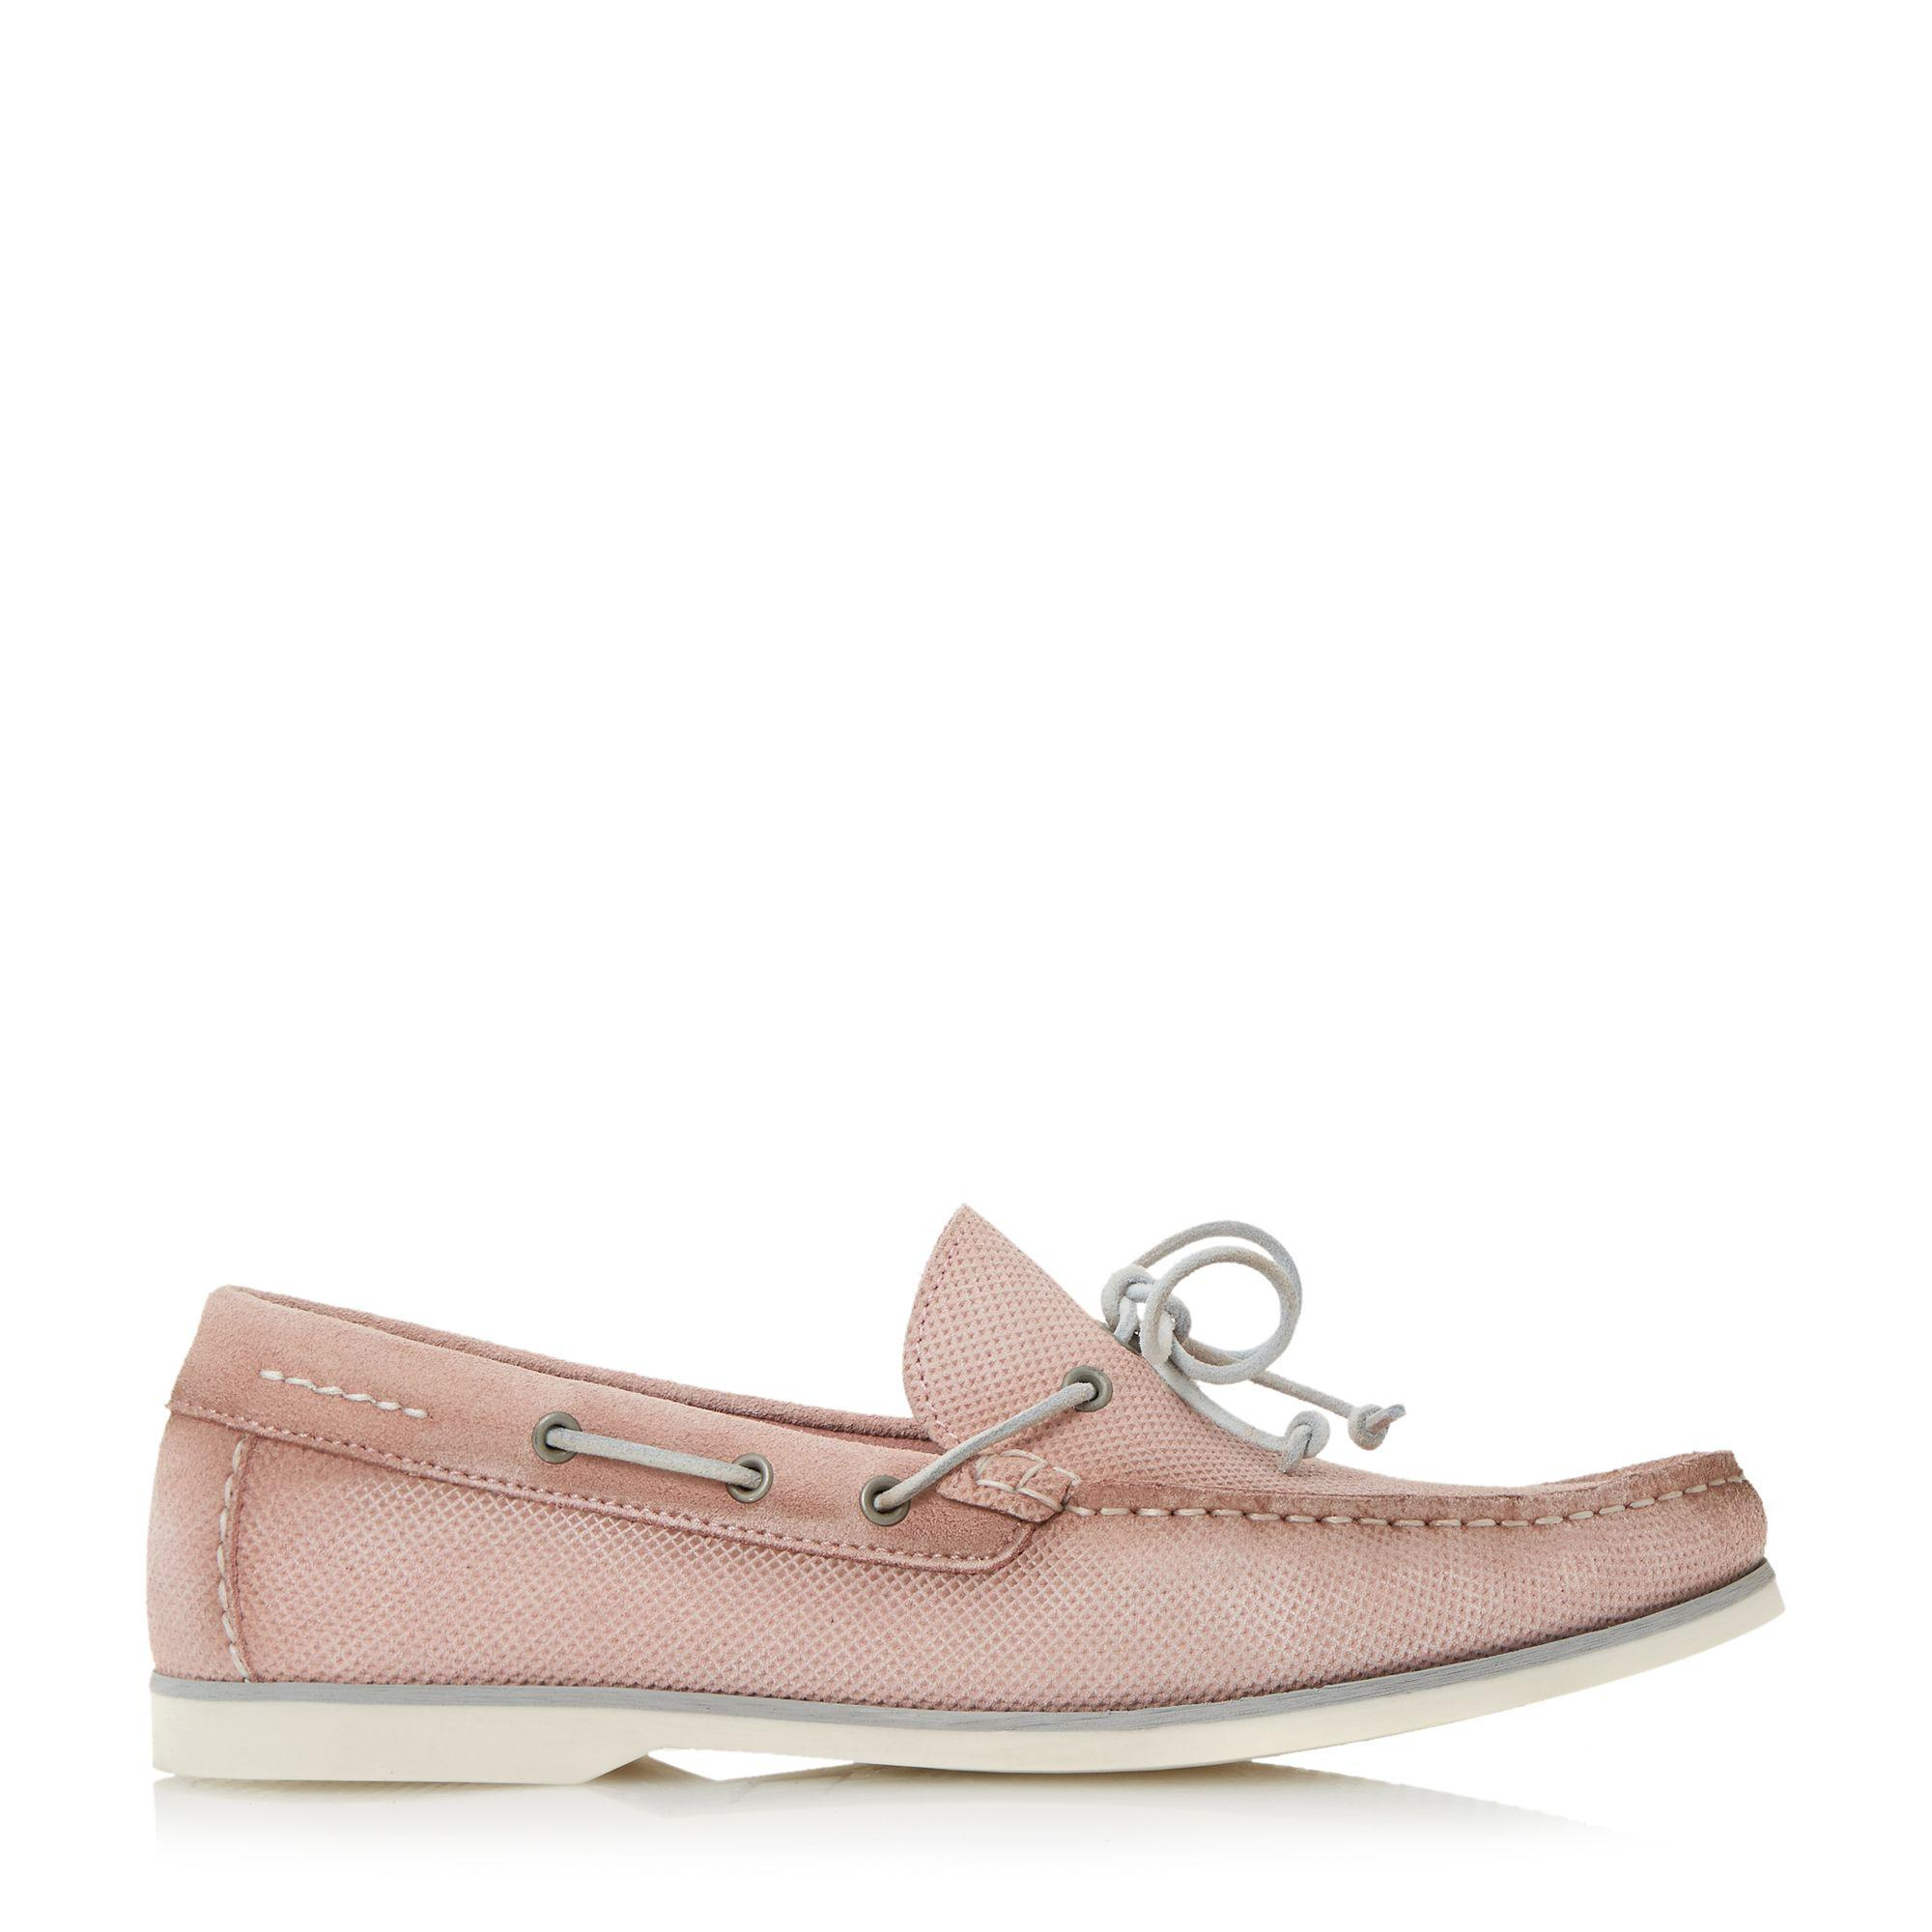 Bertie Bubble Textured Suede Boat Shoes in Pink for Men